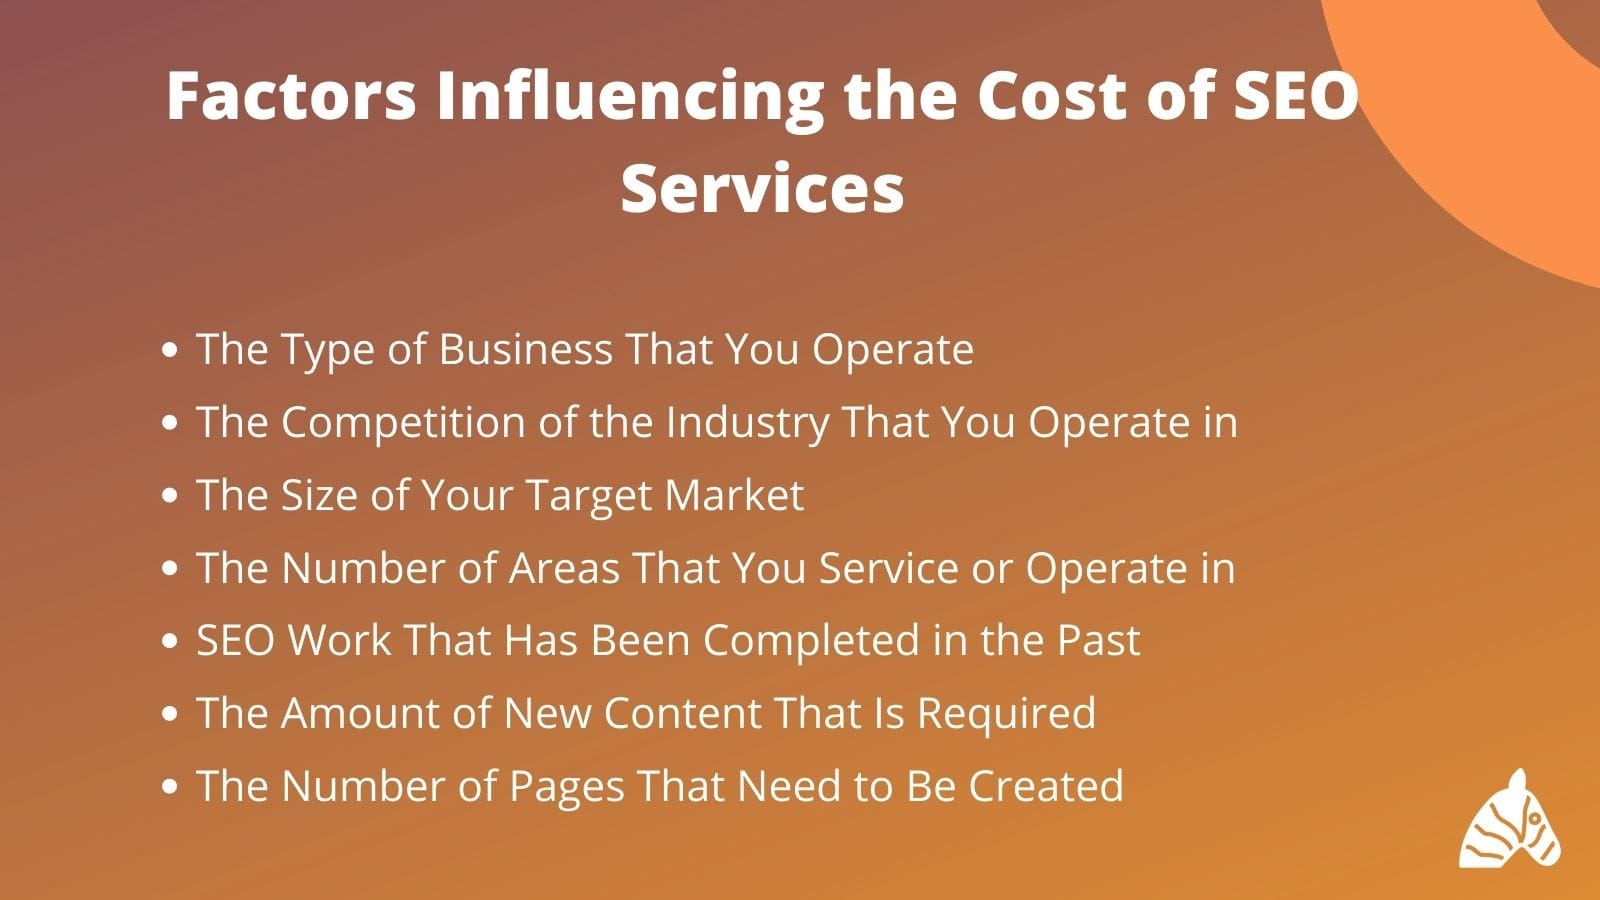 Factors that influence the cost of SEO services in Australia